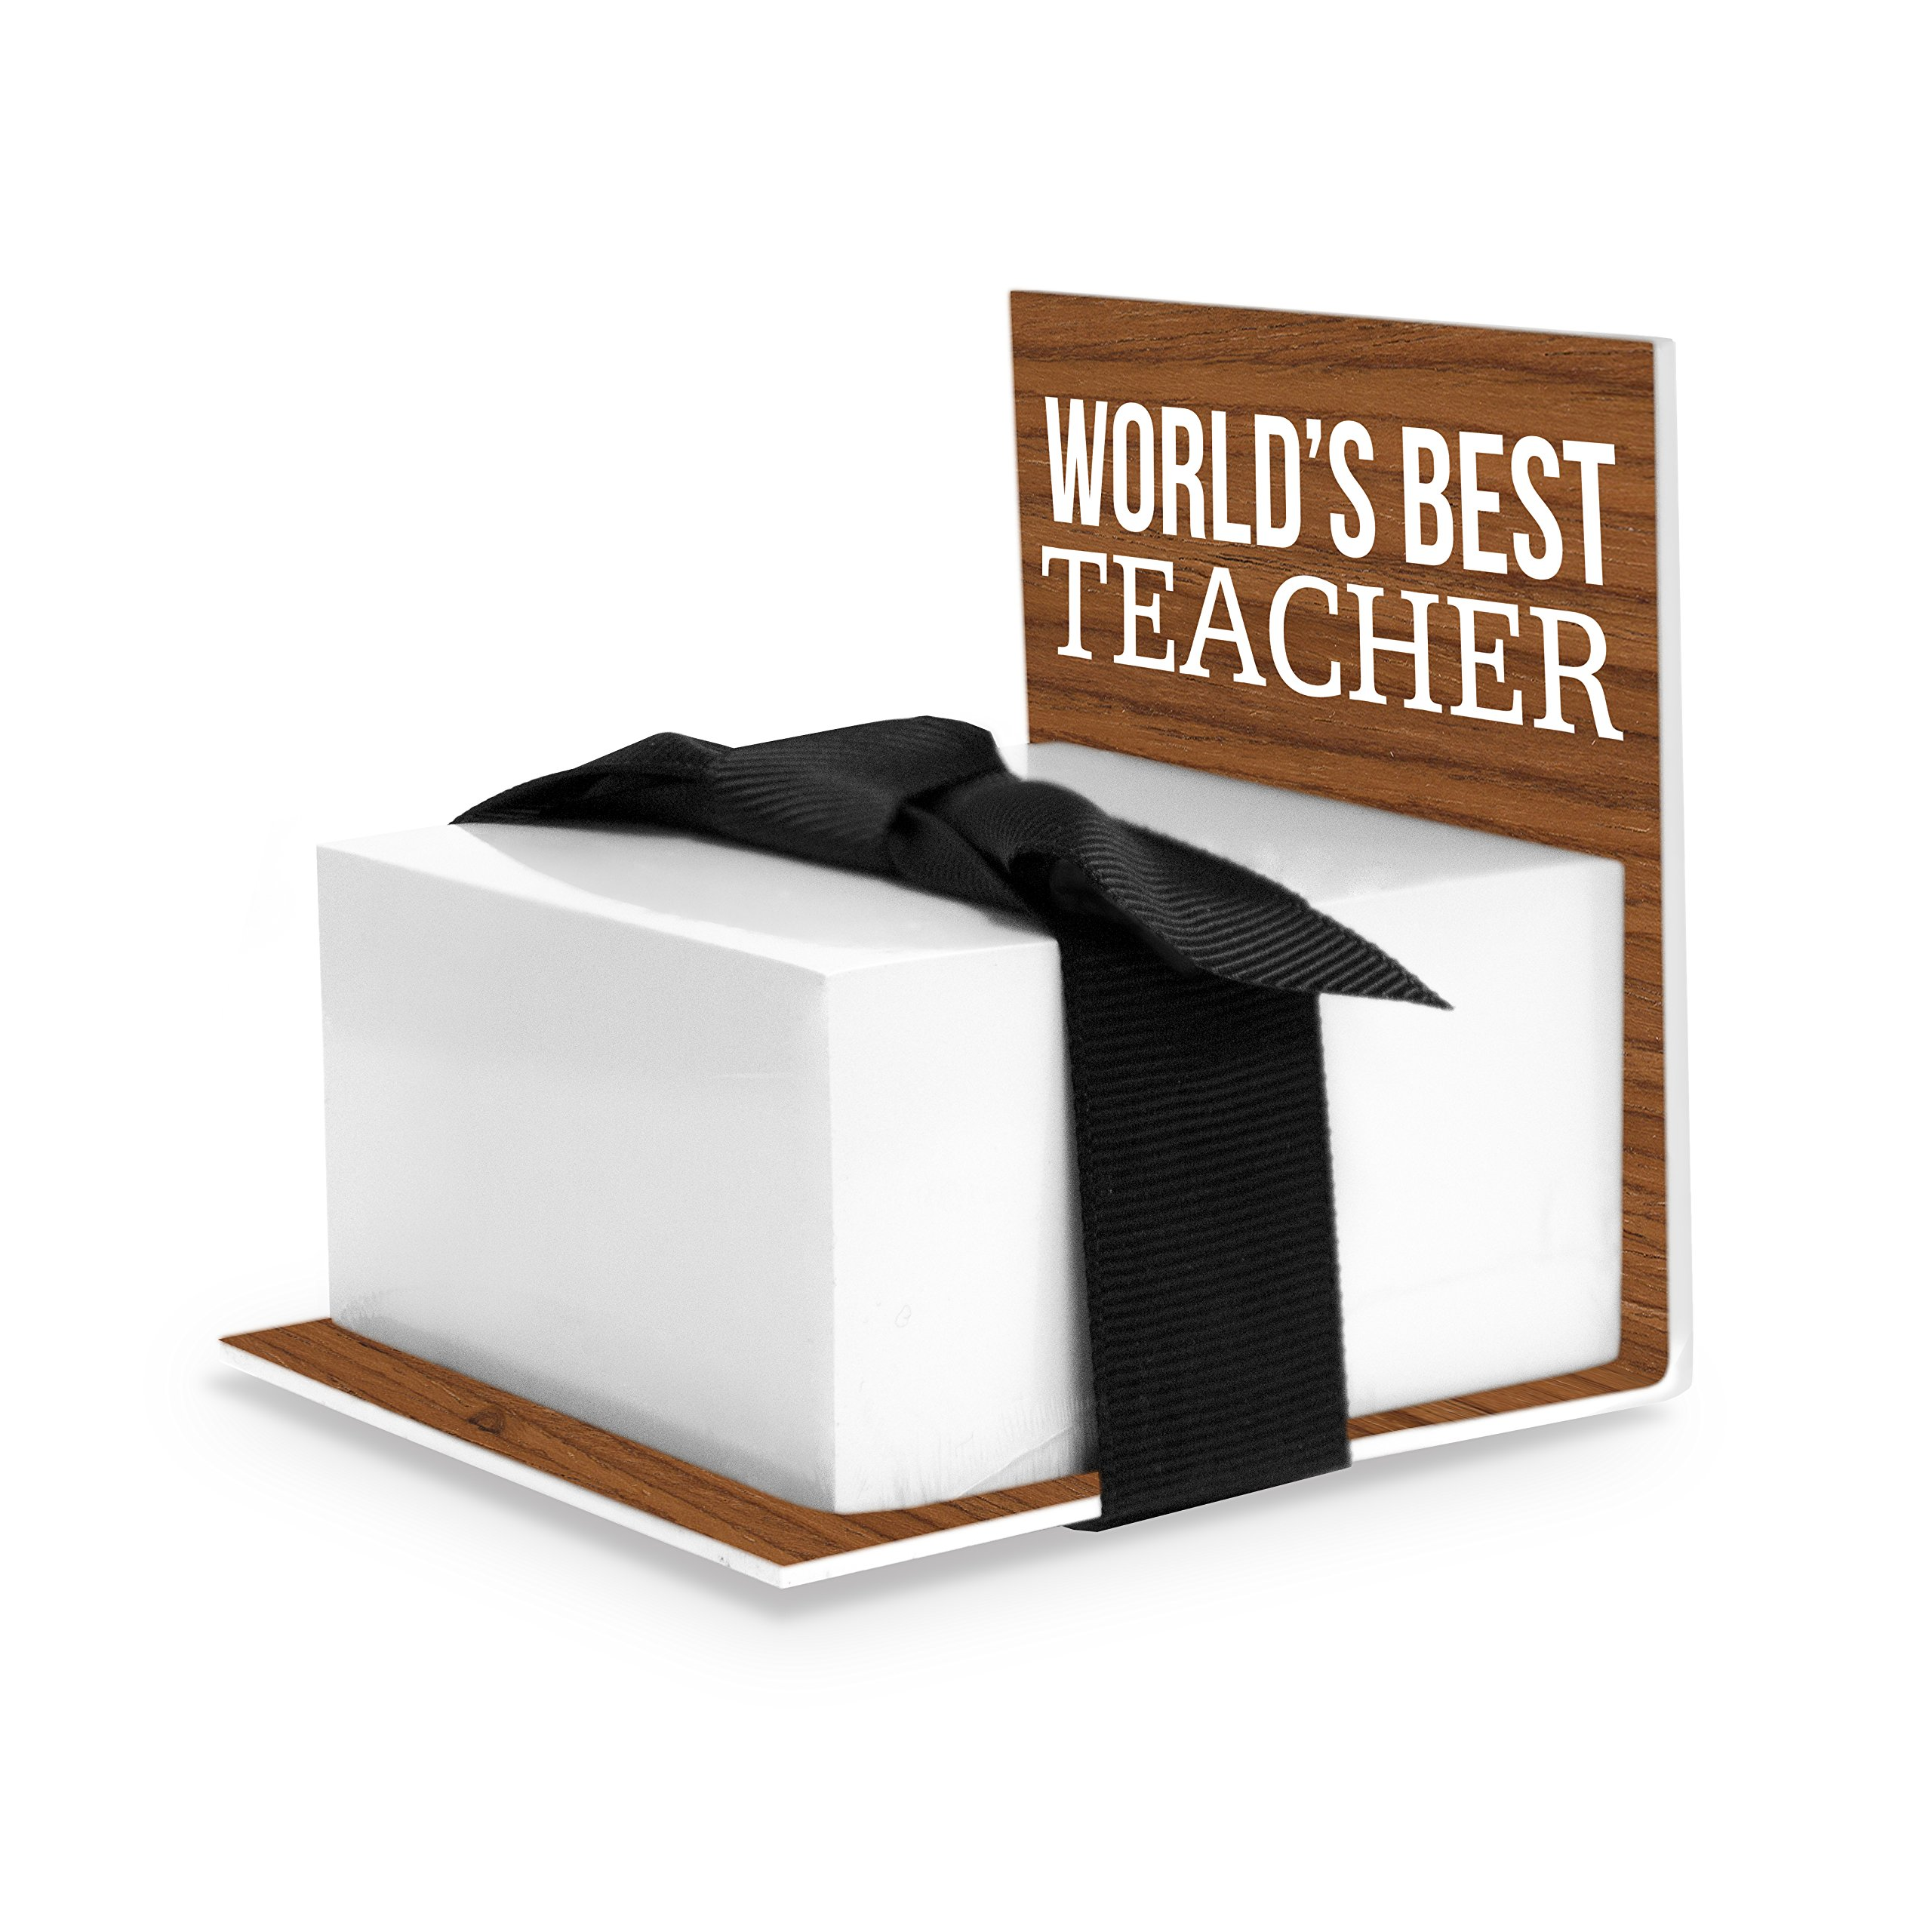 Sticky Notes Holder, Worlds Best Teacher, Brown (Best Teacher Gift)